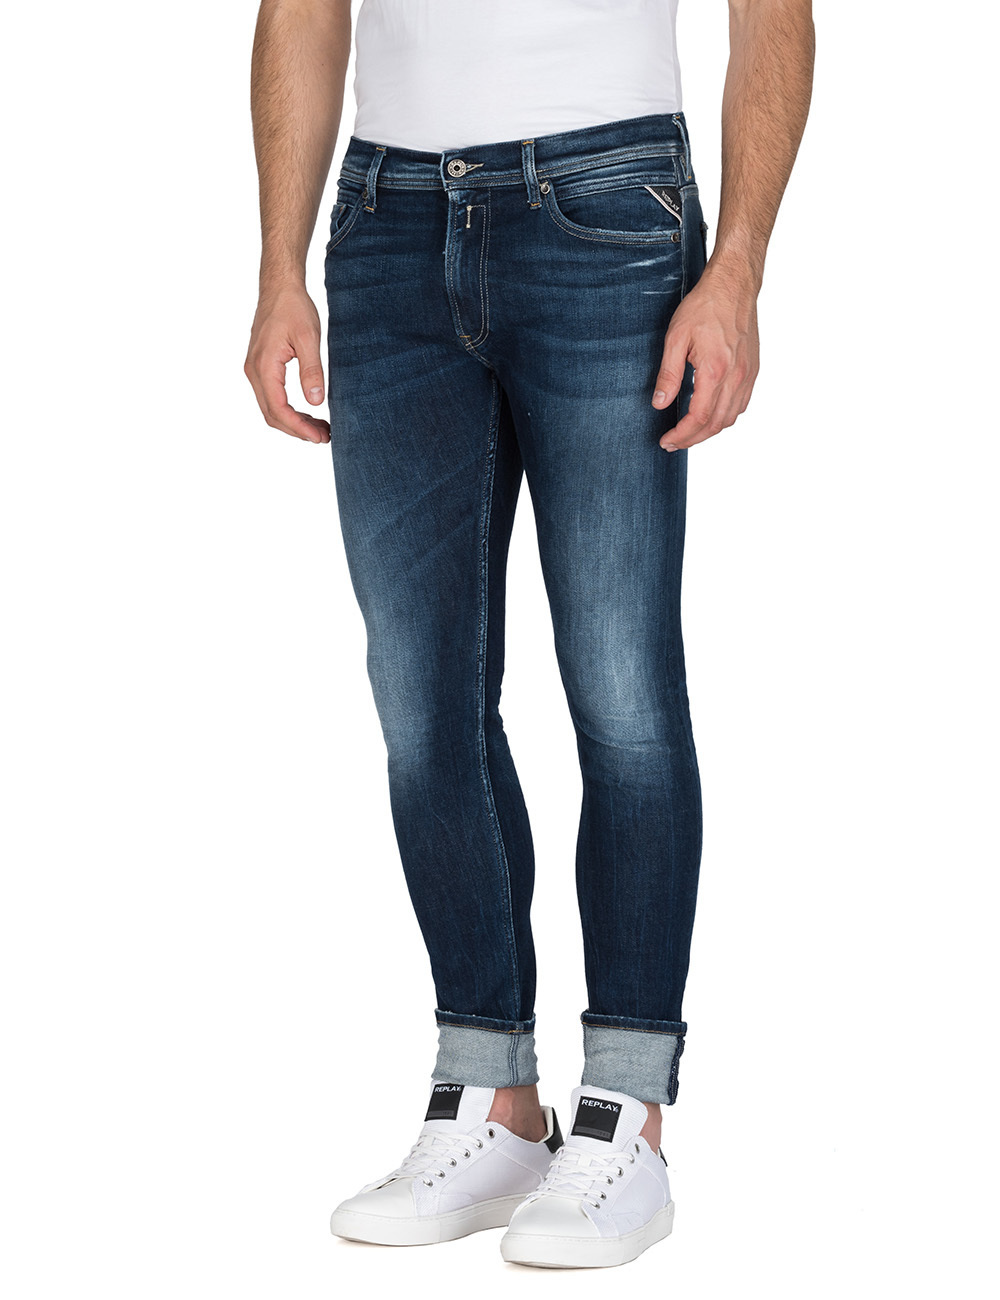 Jean Homme - coupe skinny